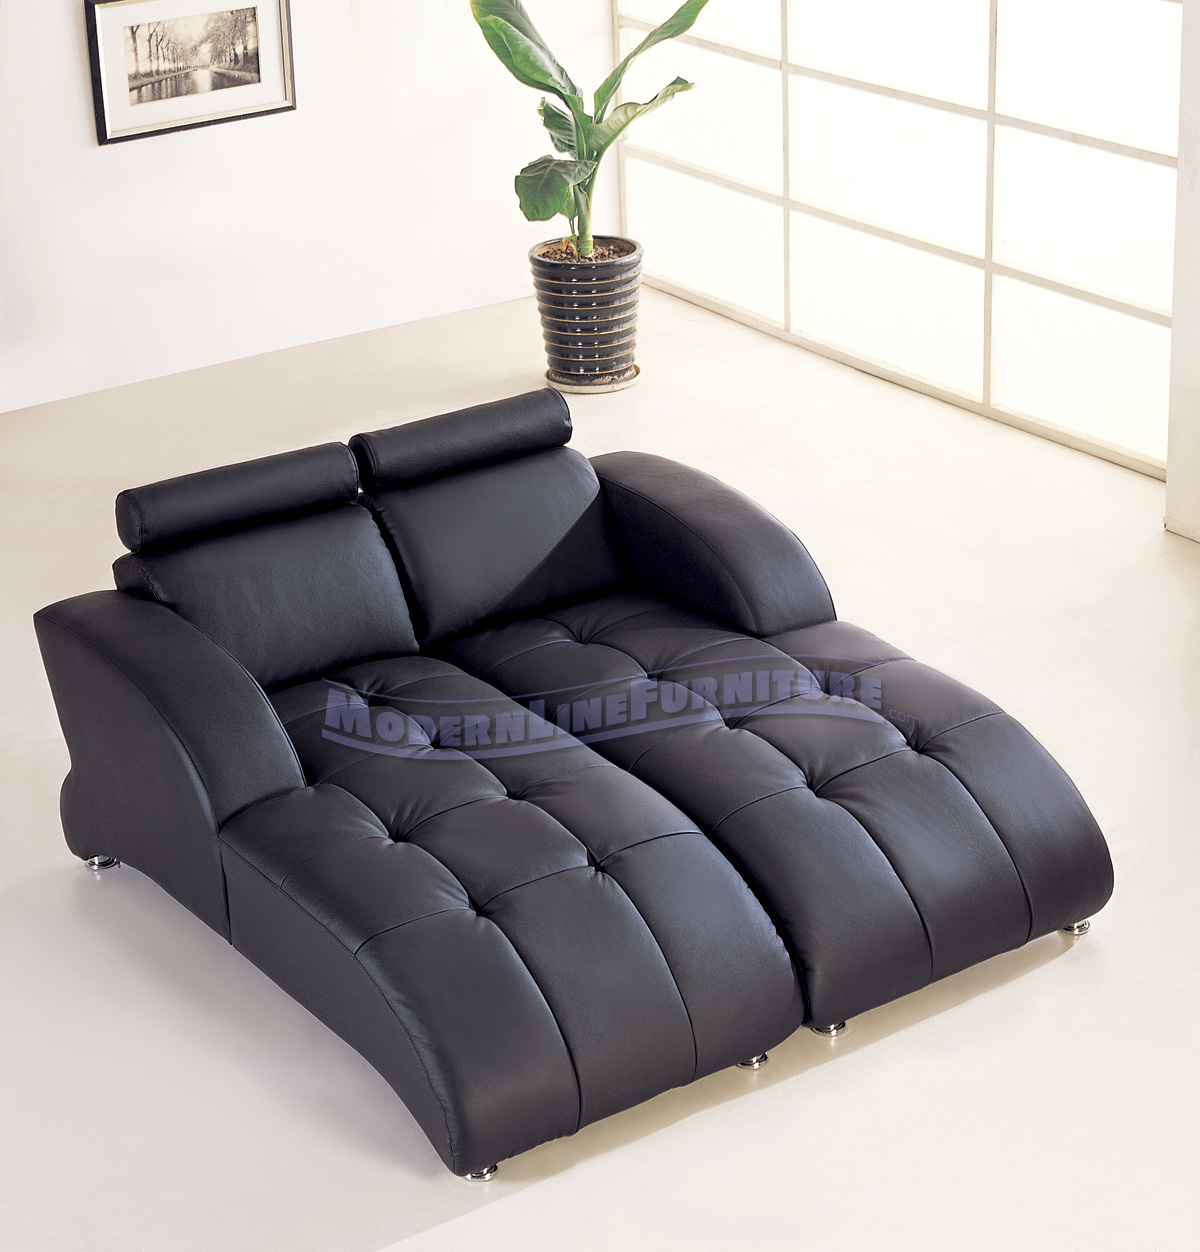 Permalink to Creative 30  Chaise Lounge for Two